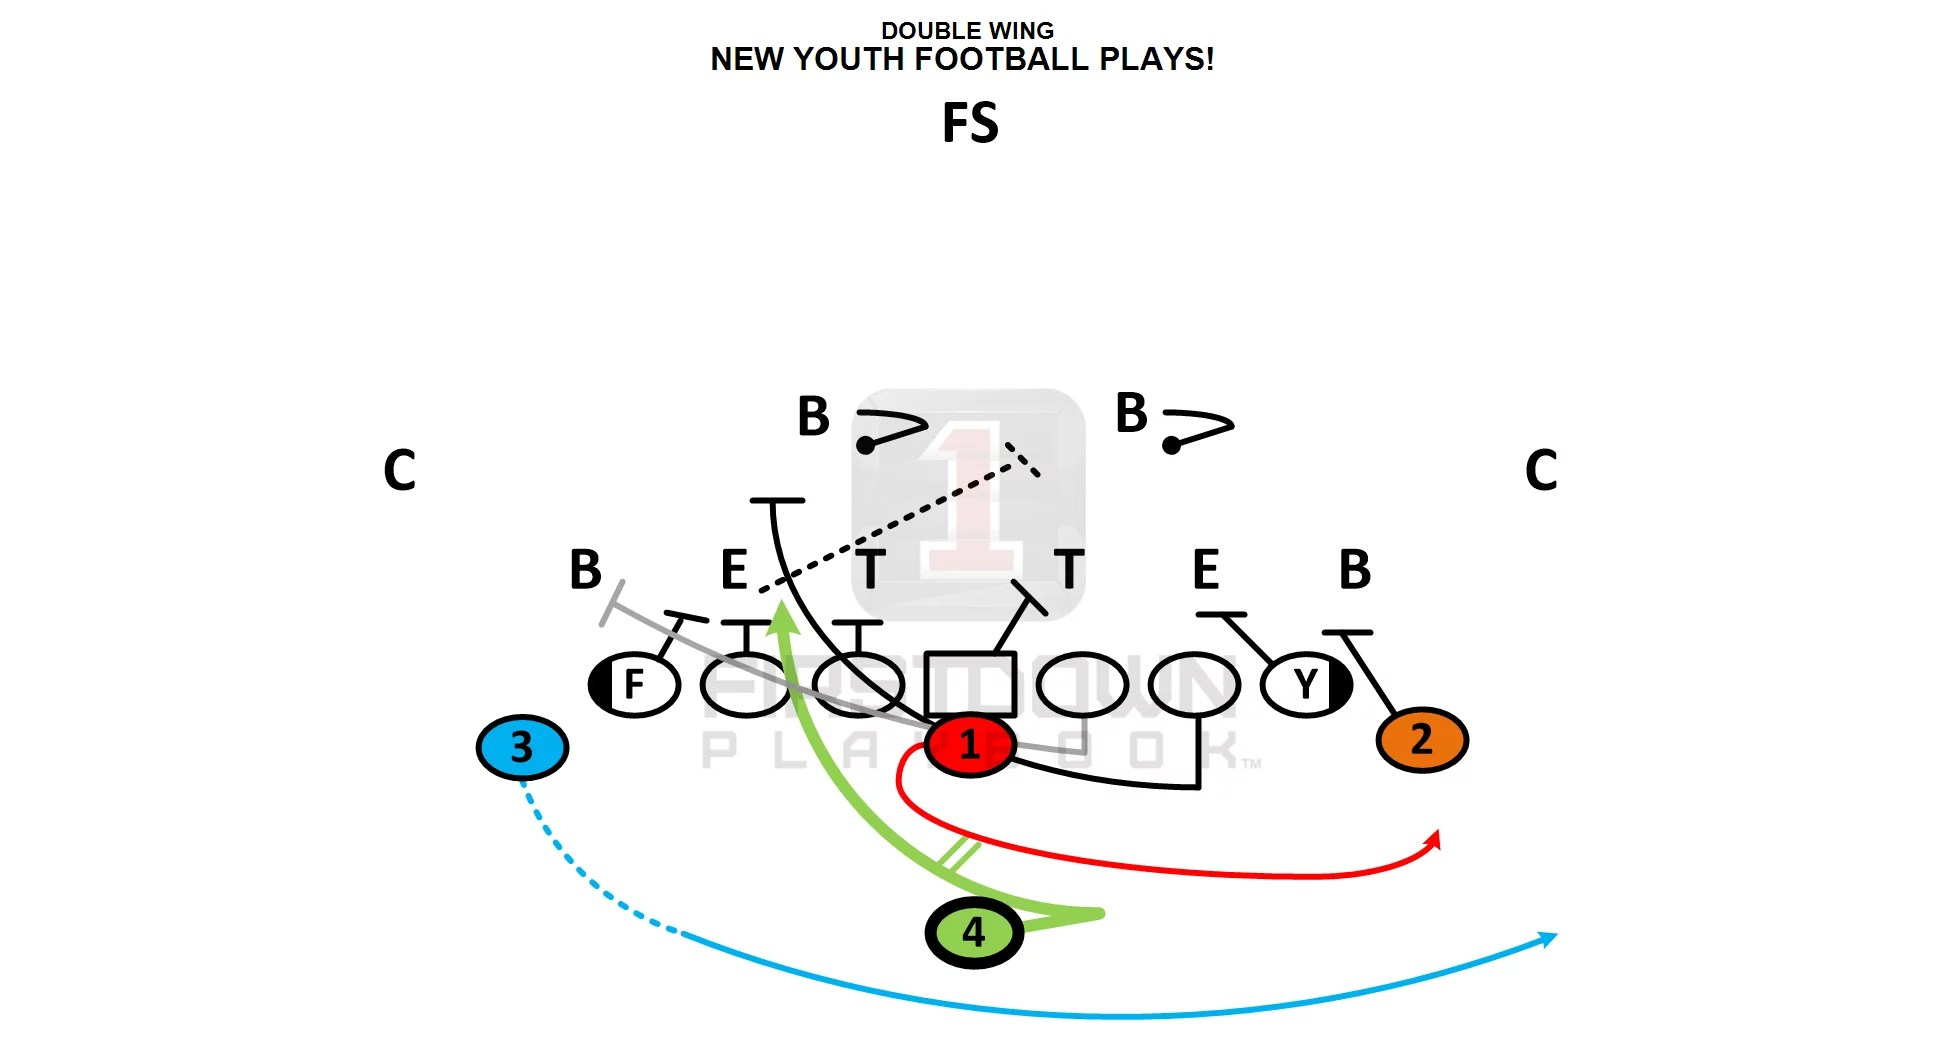 DOUBLE WING PLAYBOOK DOWNLOAD